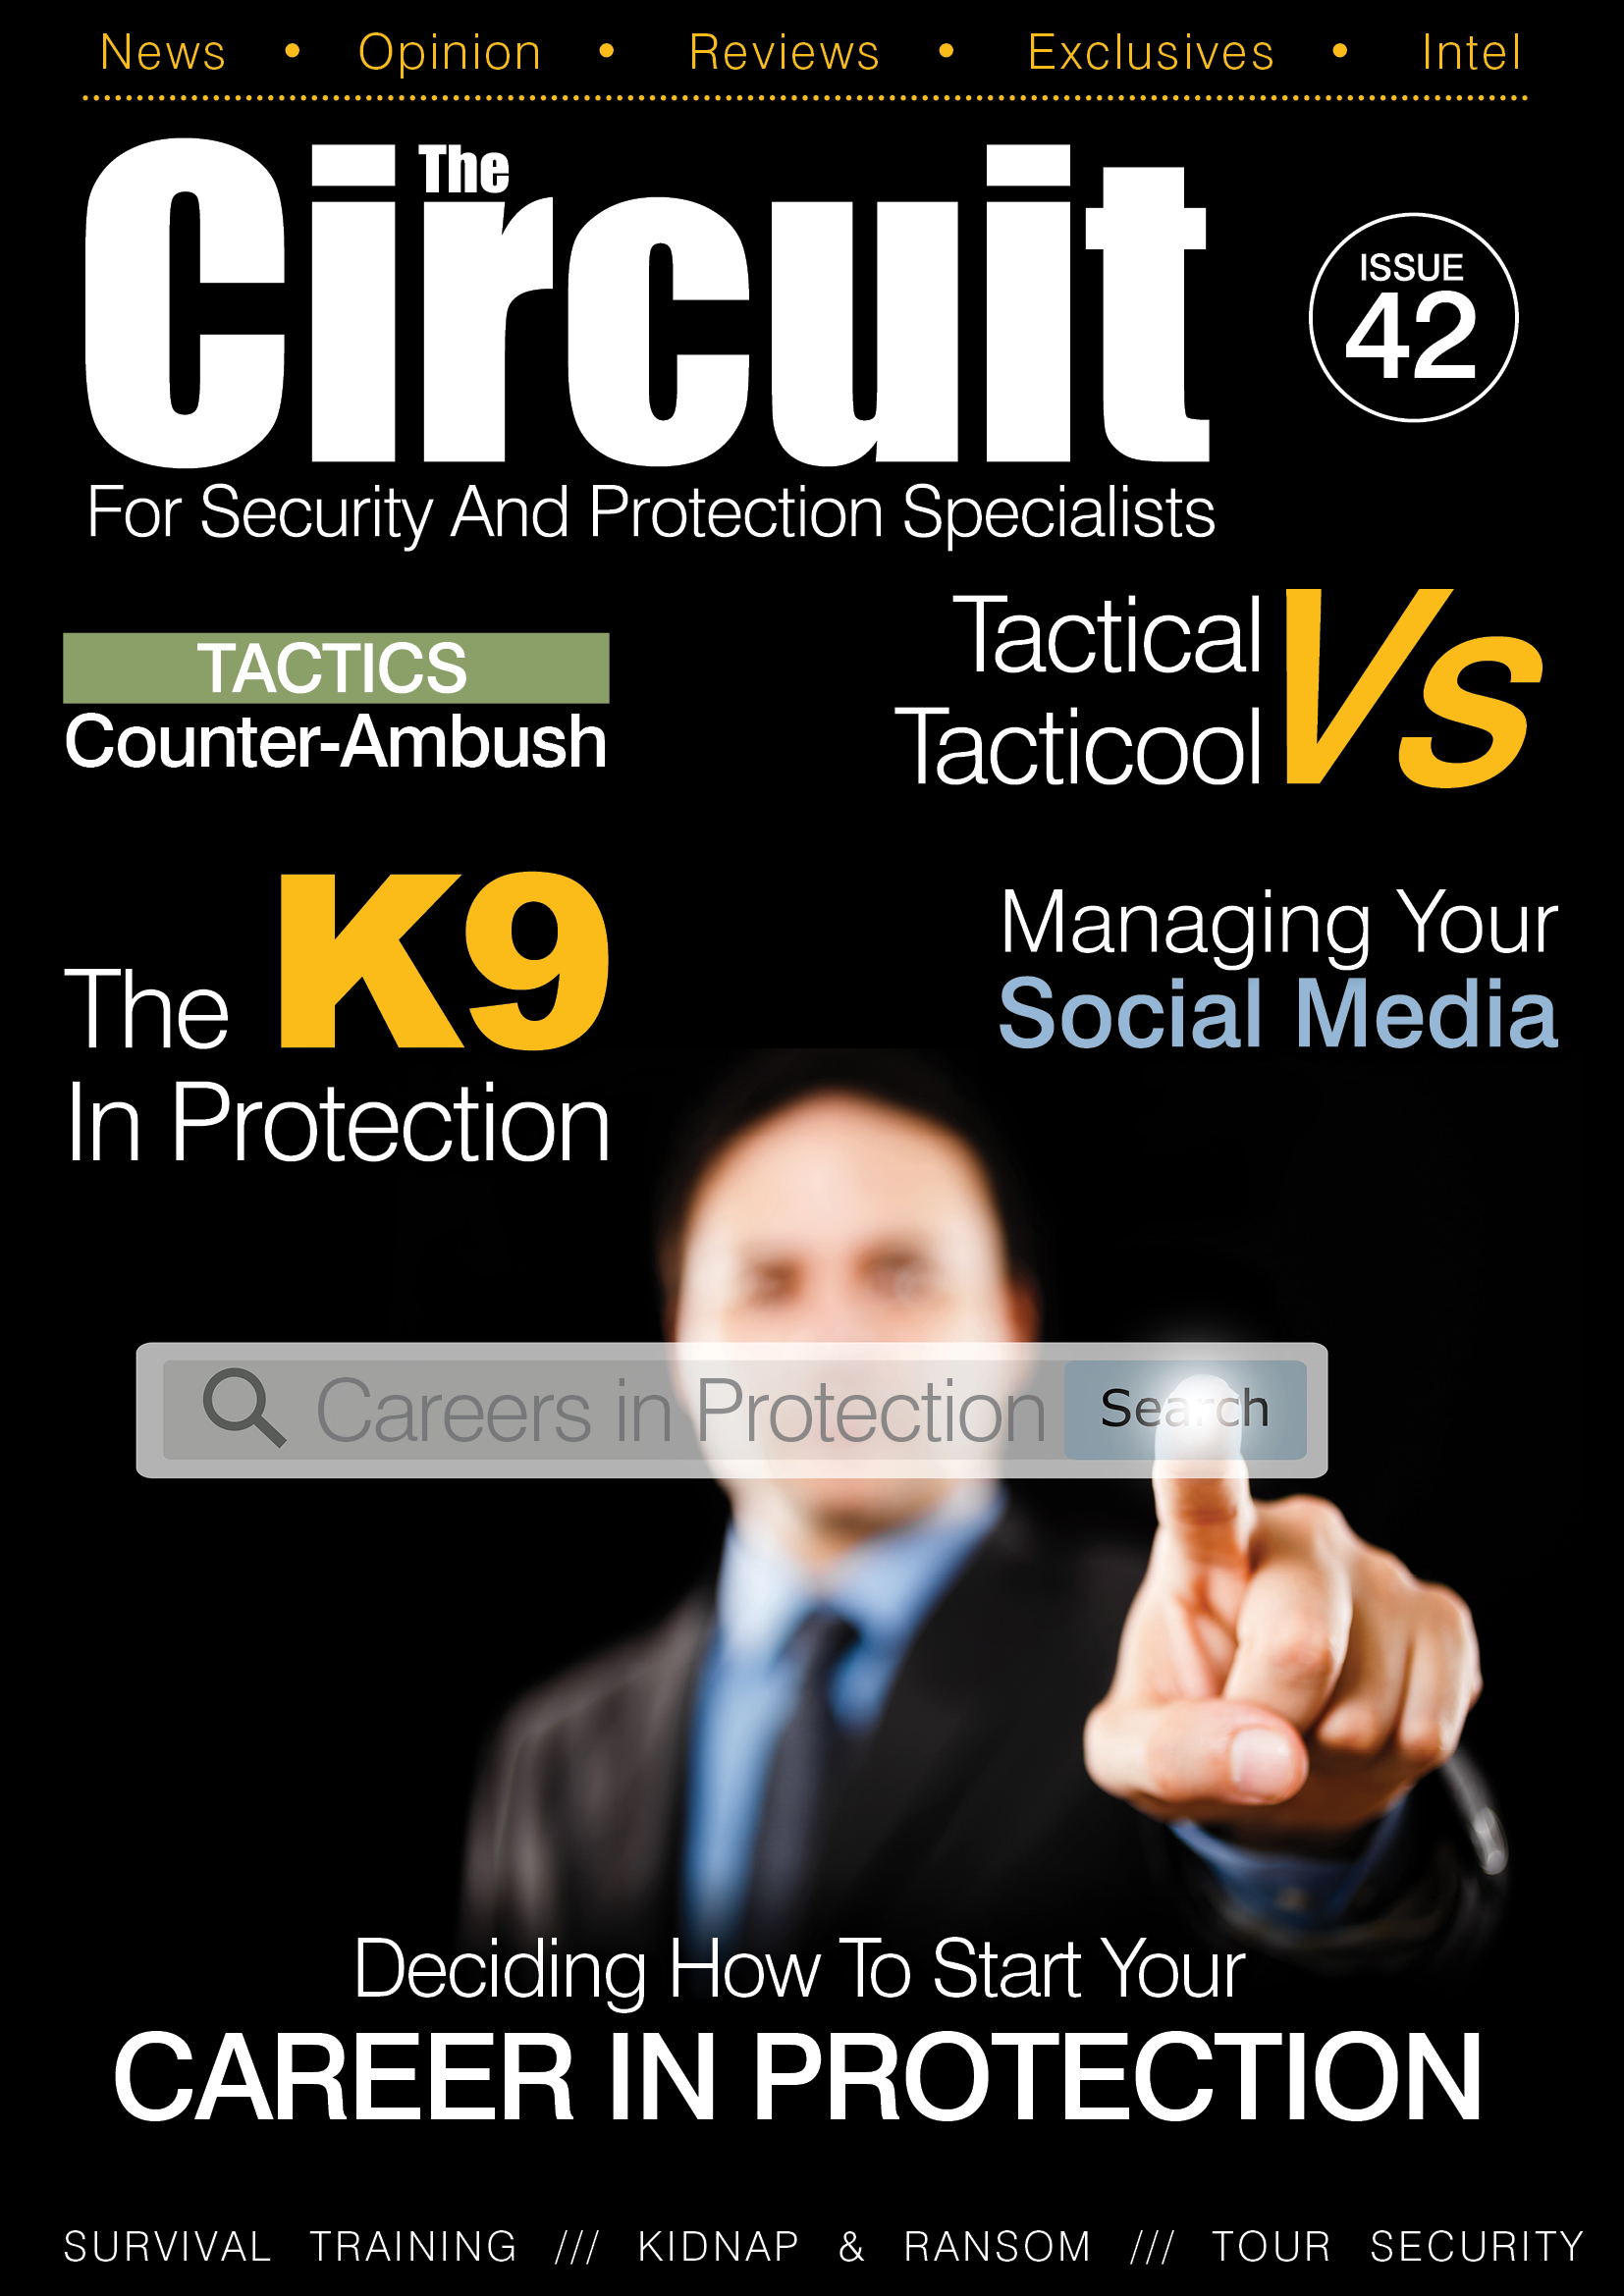 Issue 42 cover of Circuit Magazine showing a CPO searching online